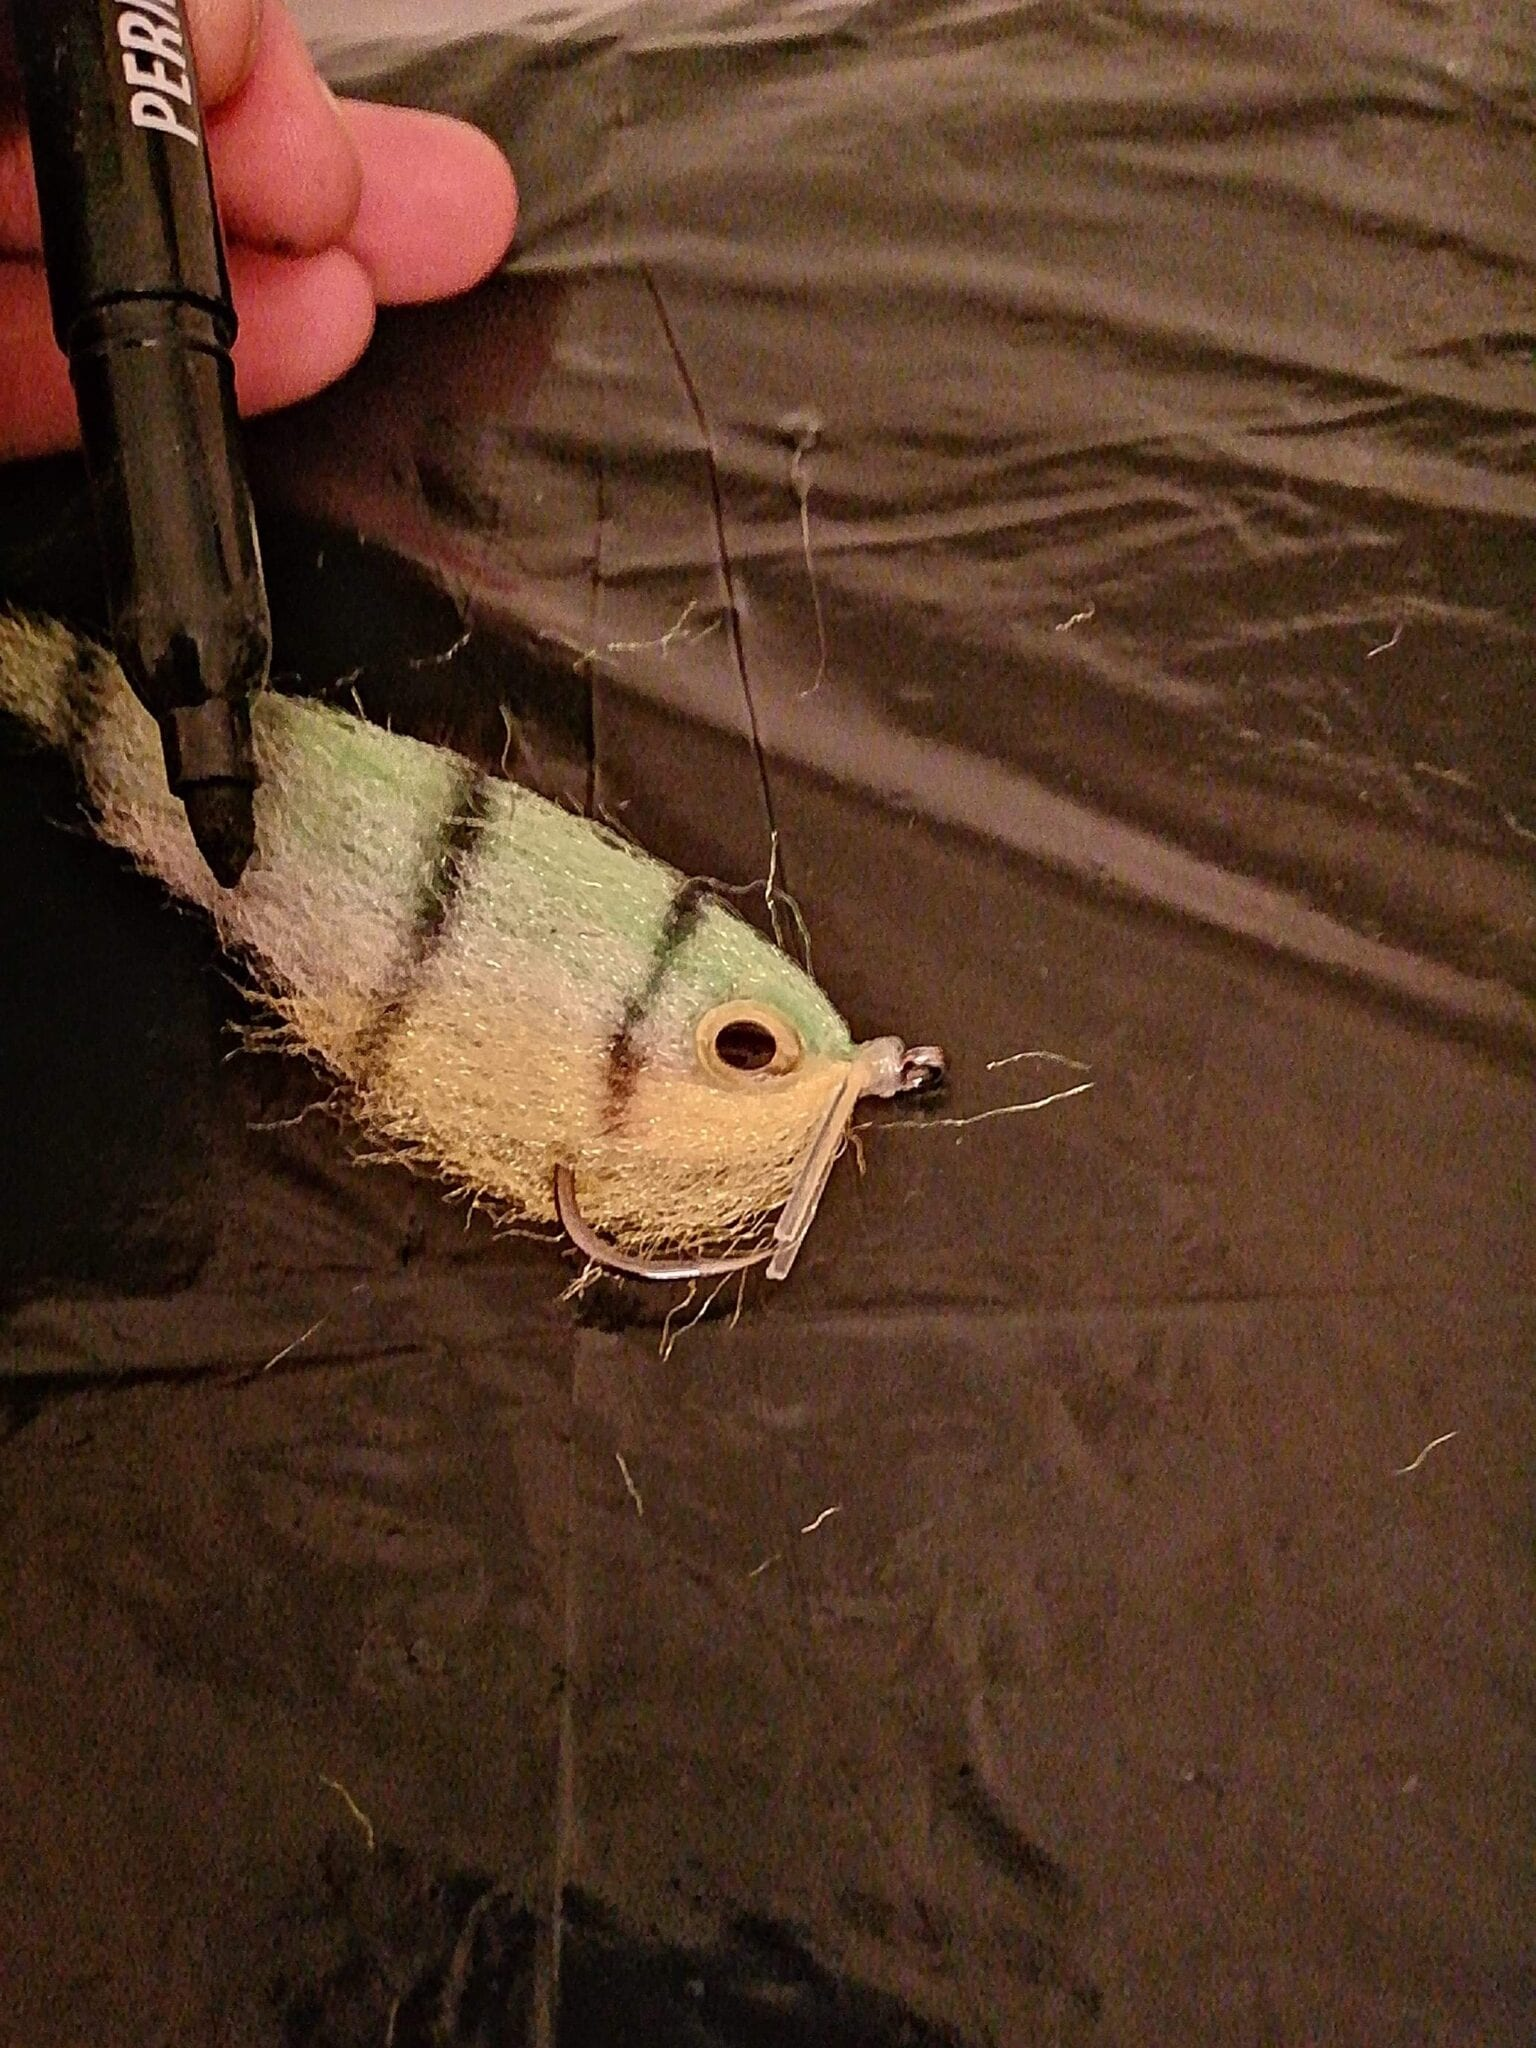 Put the fly flat to add the marker pen and dab lines as this is an easier way to apply the markers to the minnow.